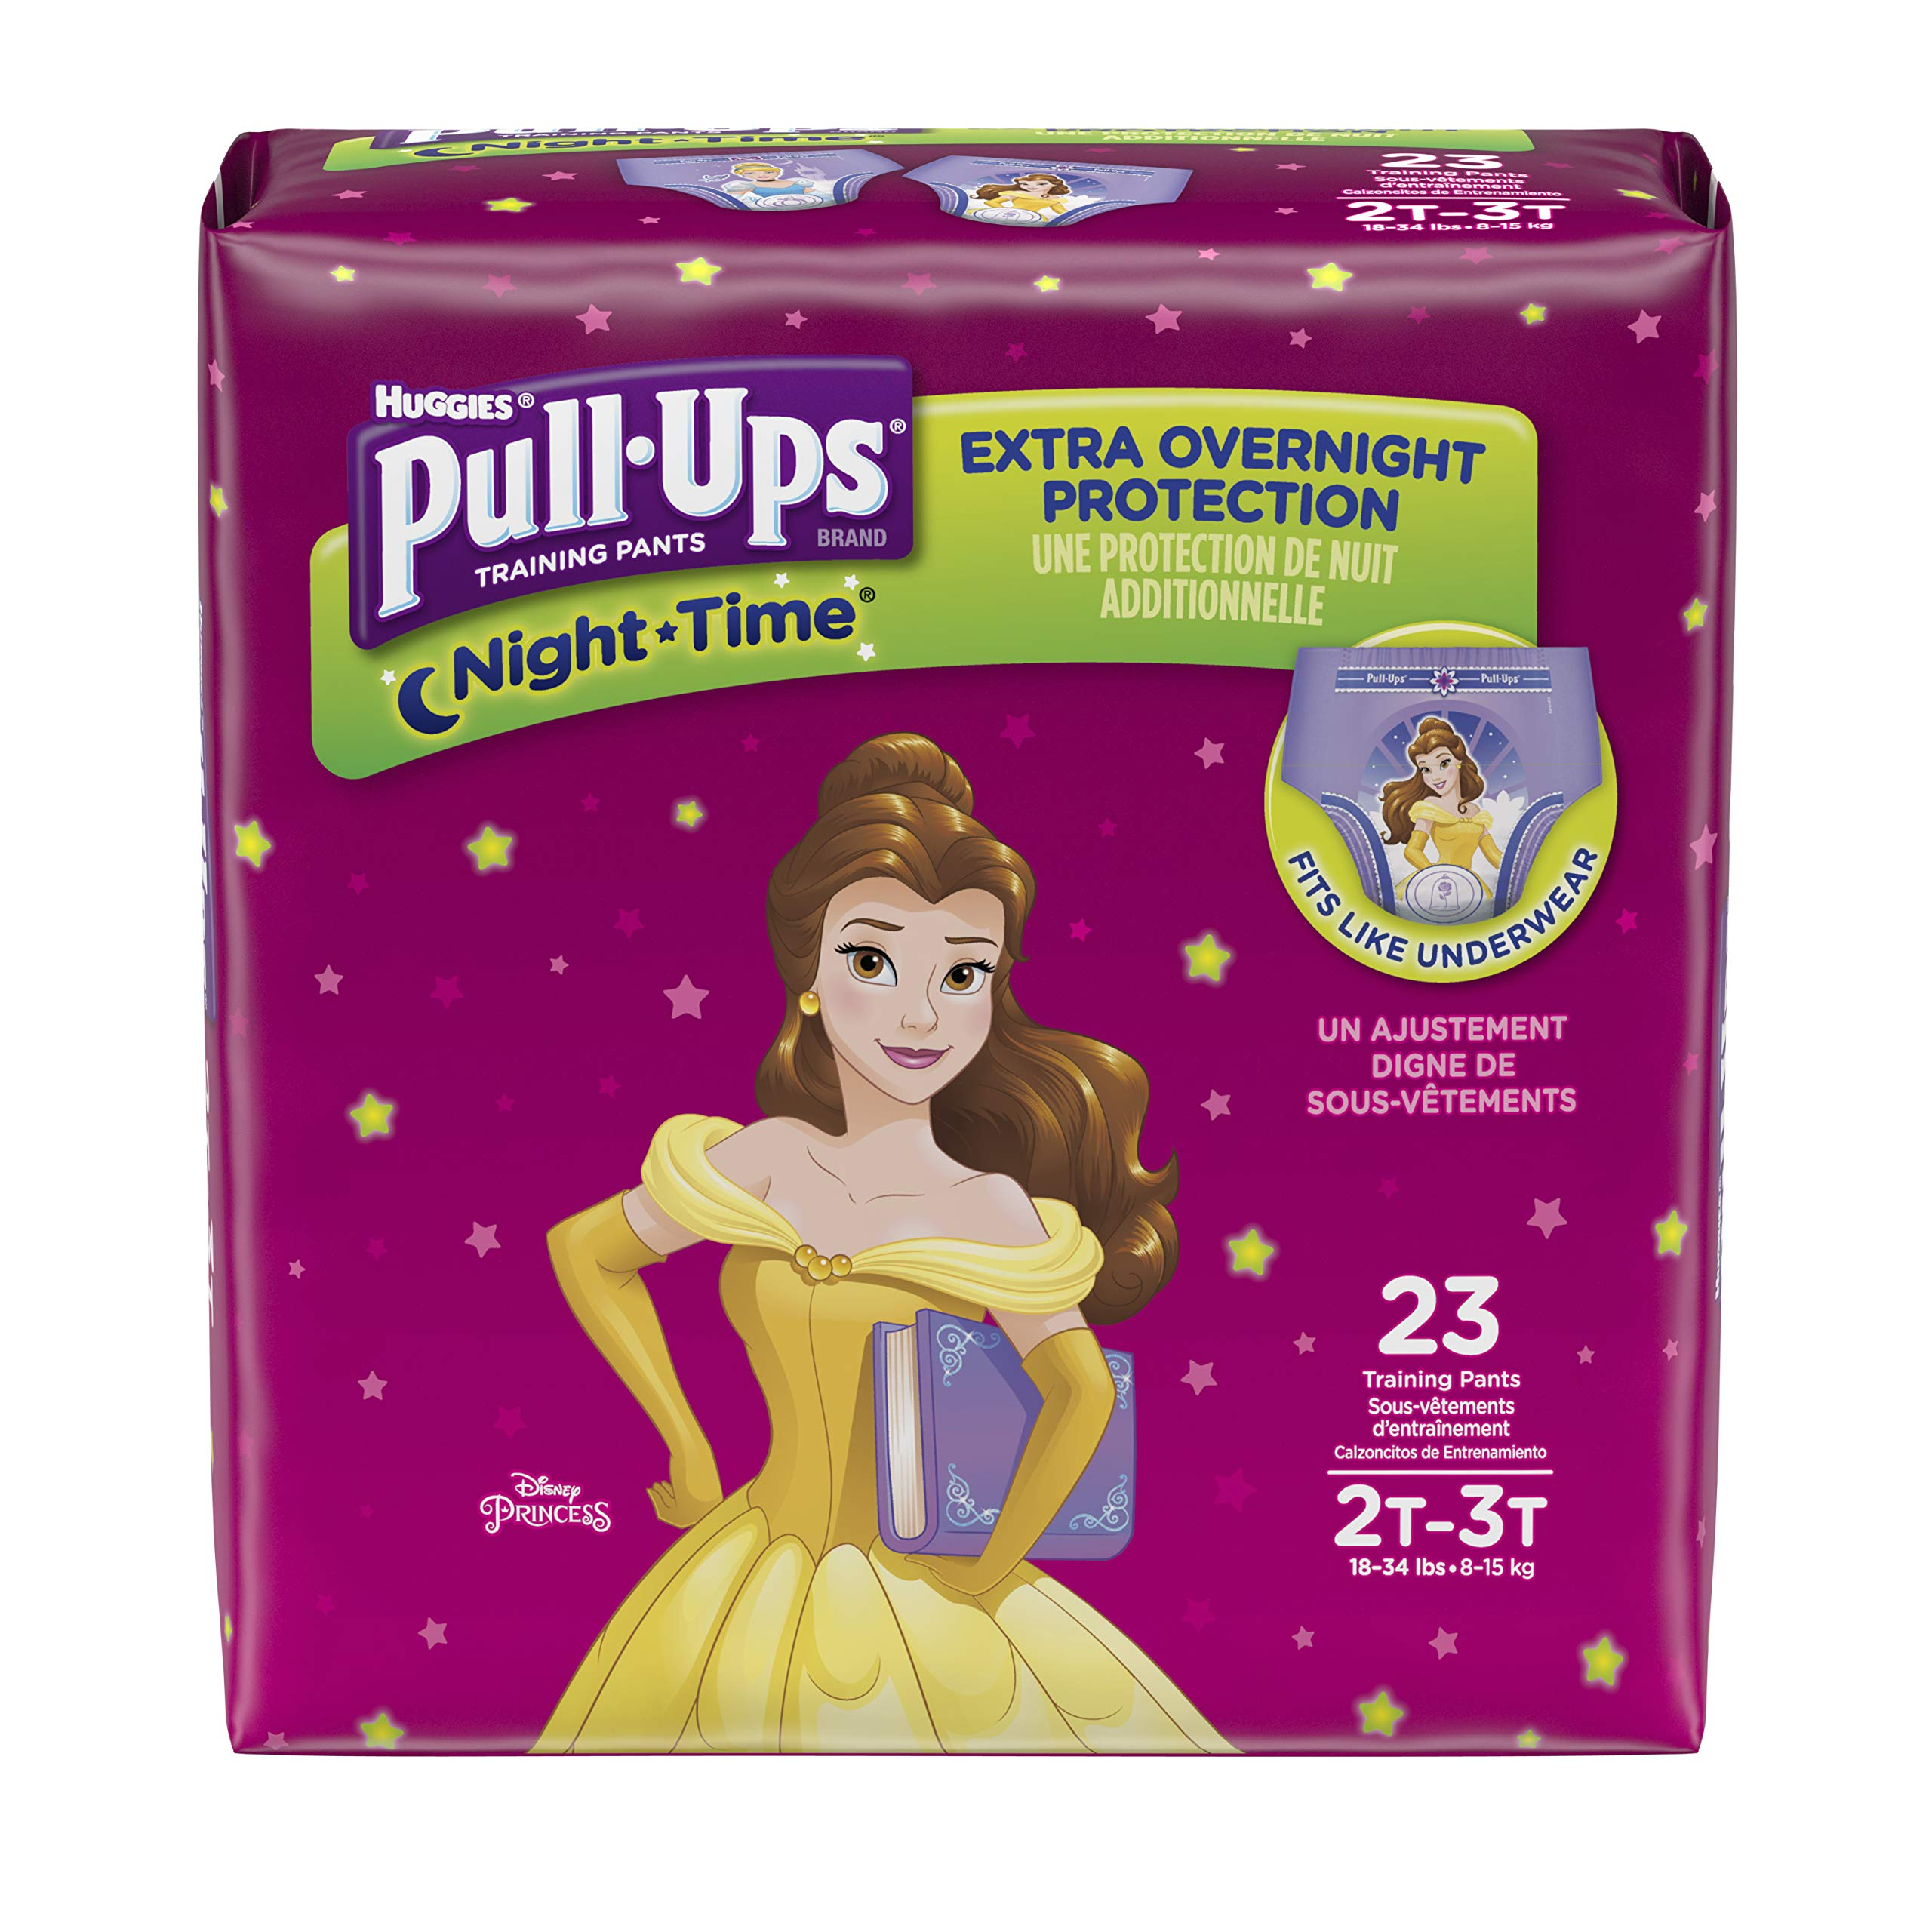 Pull-Ups Night-Time Potty Training Pants for Girls, 2T-3T (18-34 lb.), 23 Ct.- Pack of 4 (Packaging May Vary)